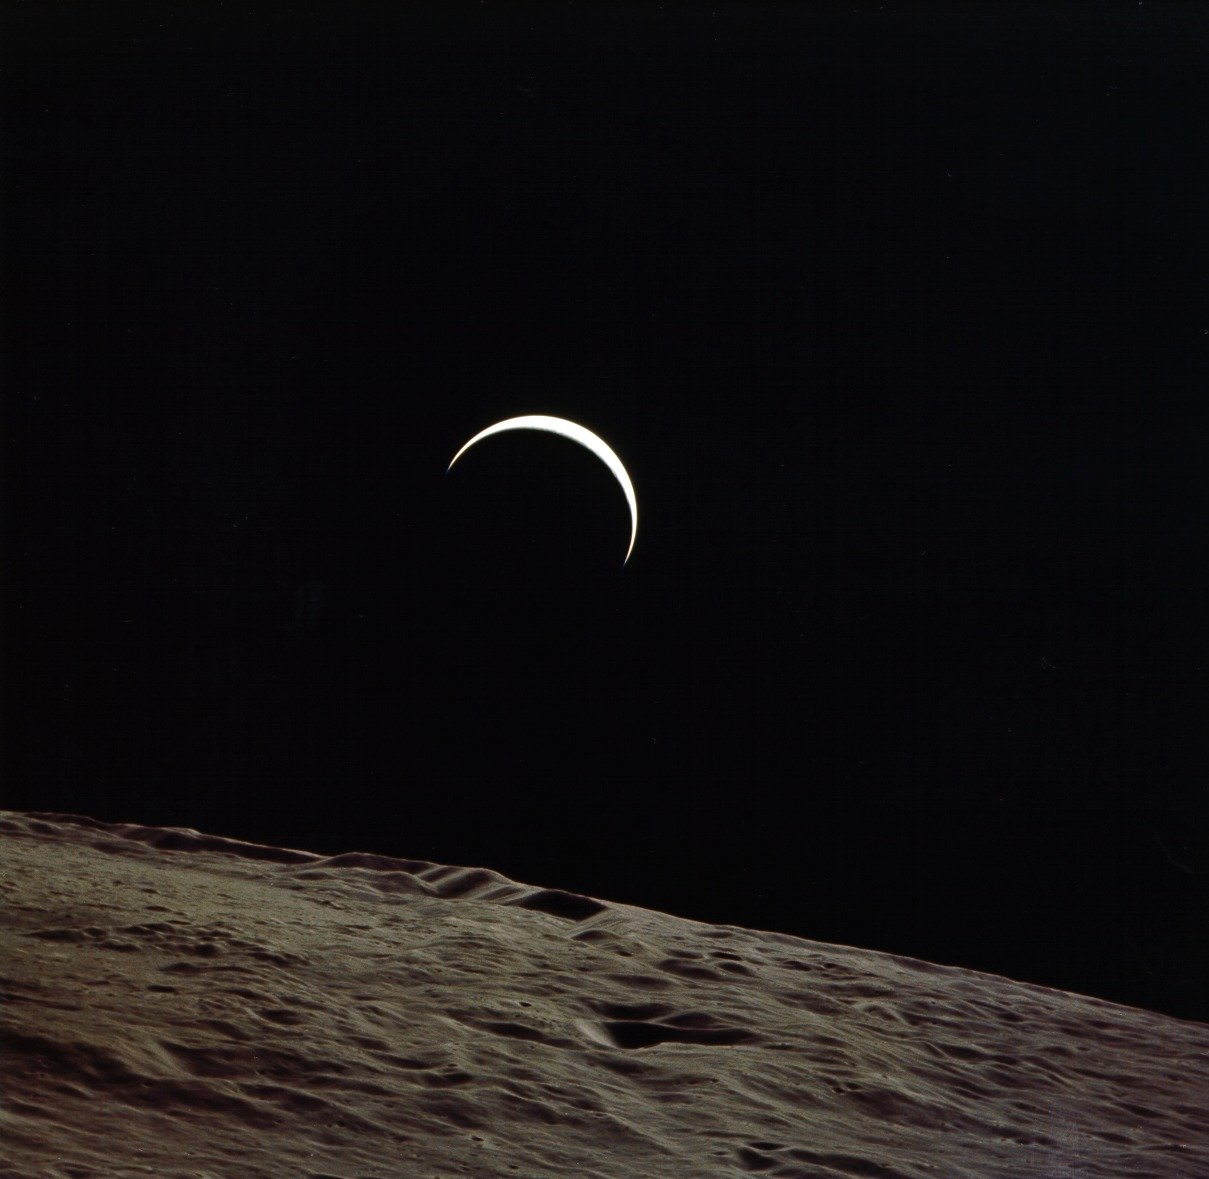 file:apollo 15 earthrise - wikimedia commons